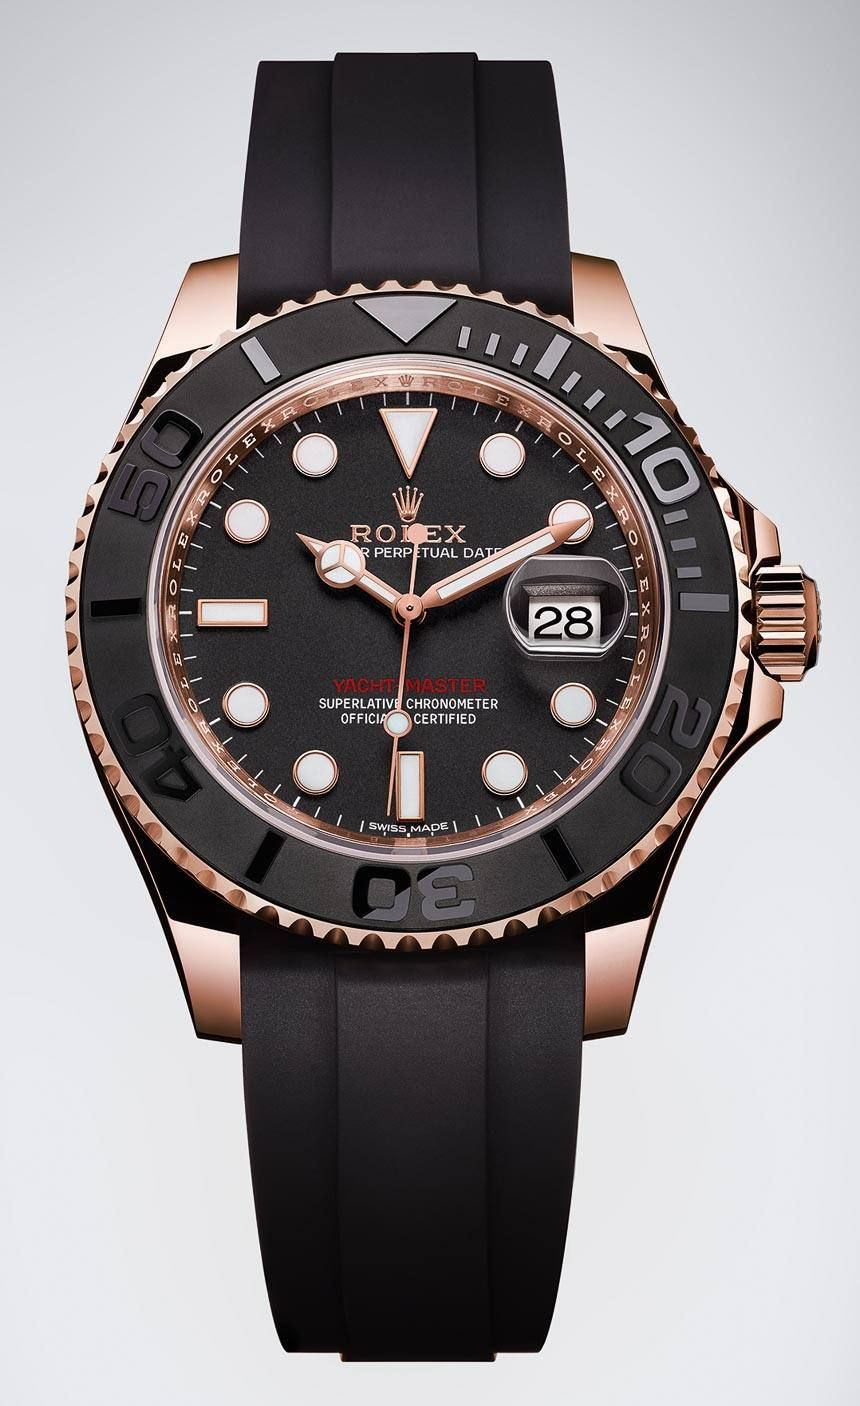 Rolex YachtMaster 116655 Watch In Everose Gold With Black